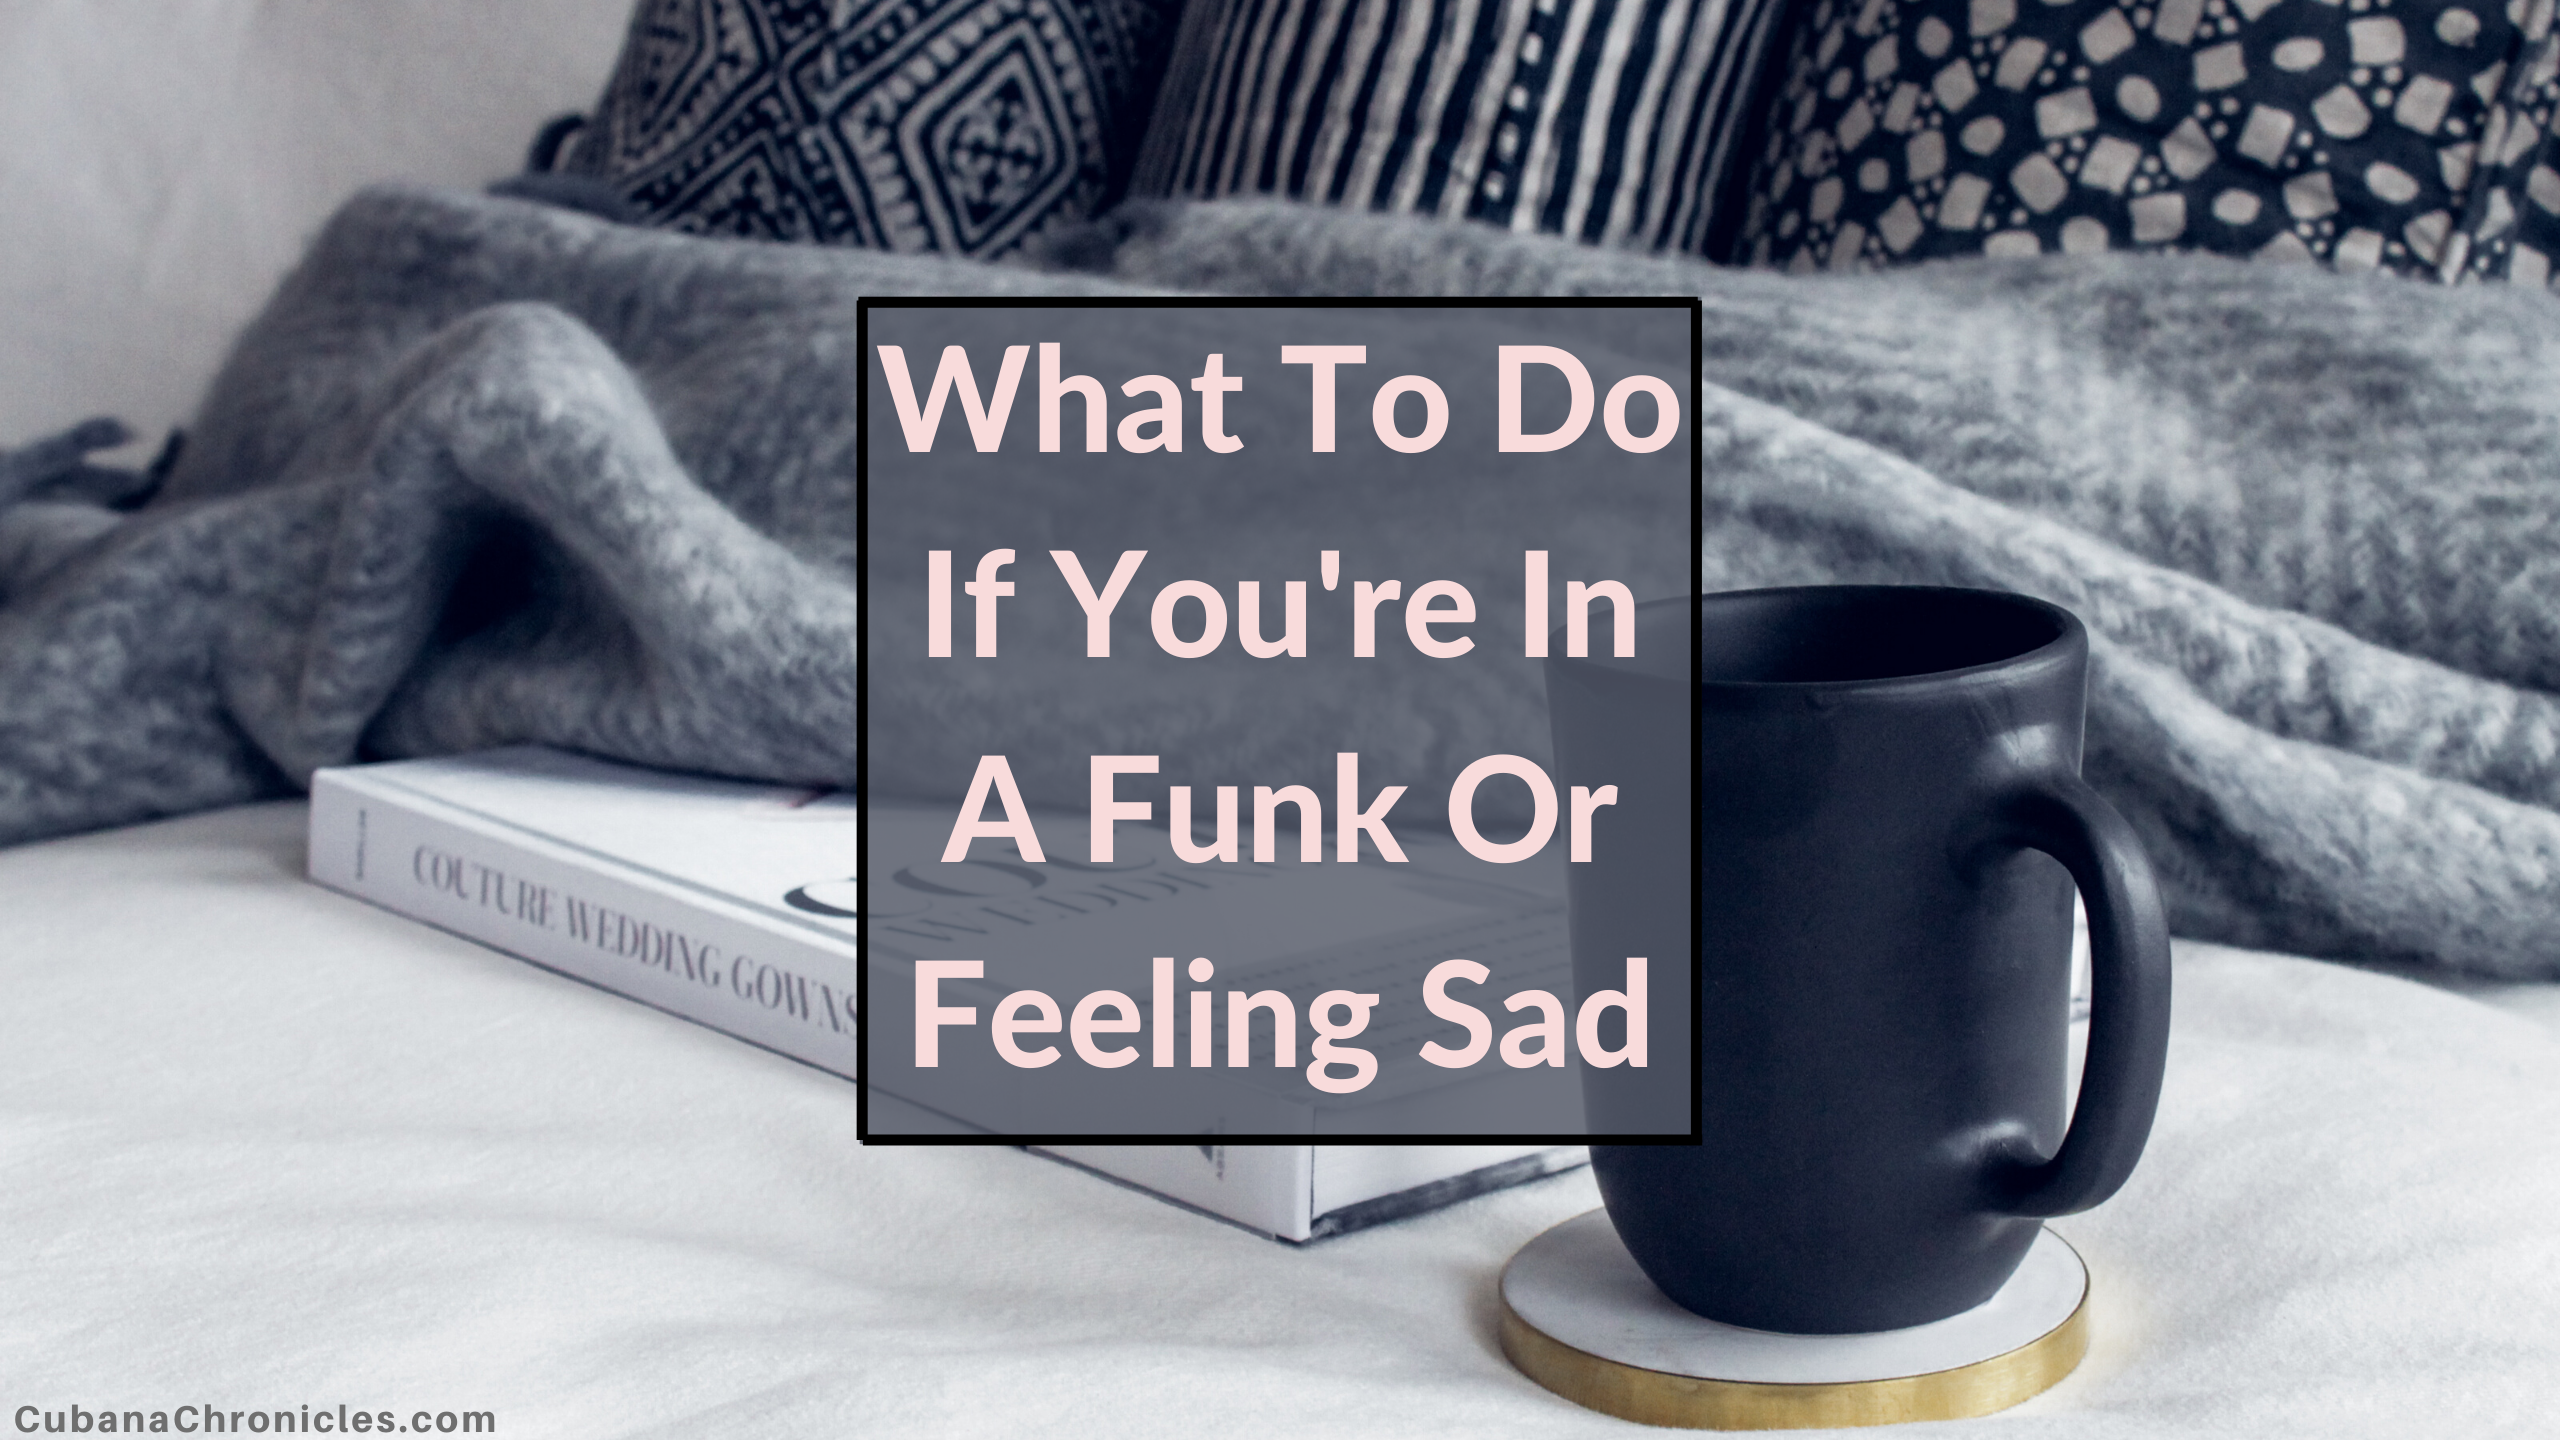 What To Do When You're Sad Or In A Funk